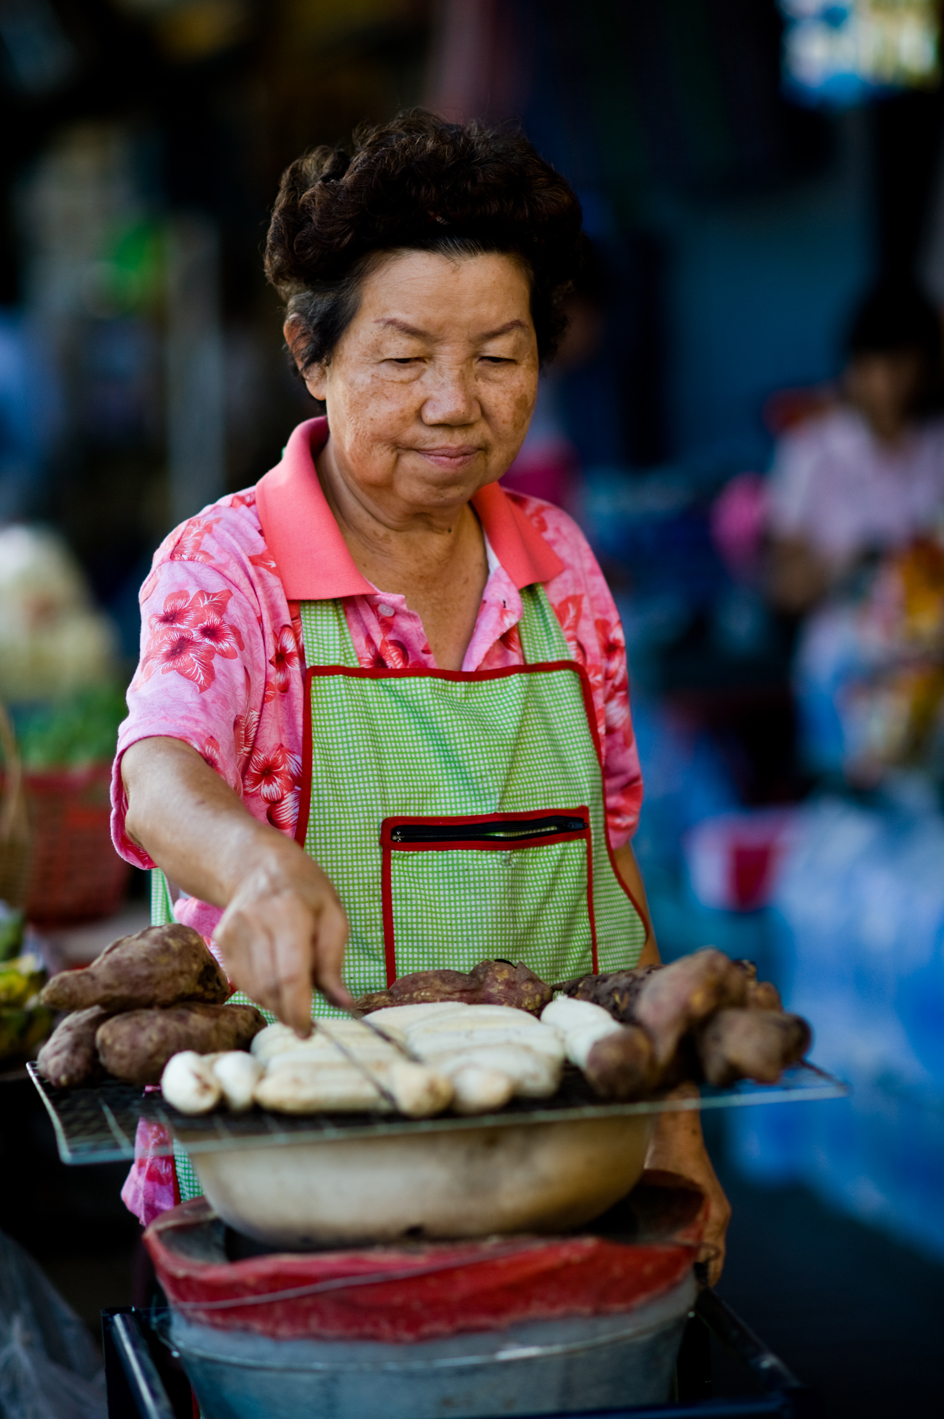 thailand woman making streetfood baked bananas